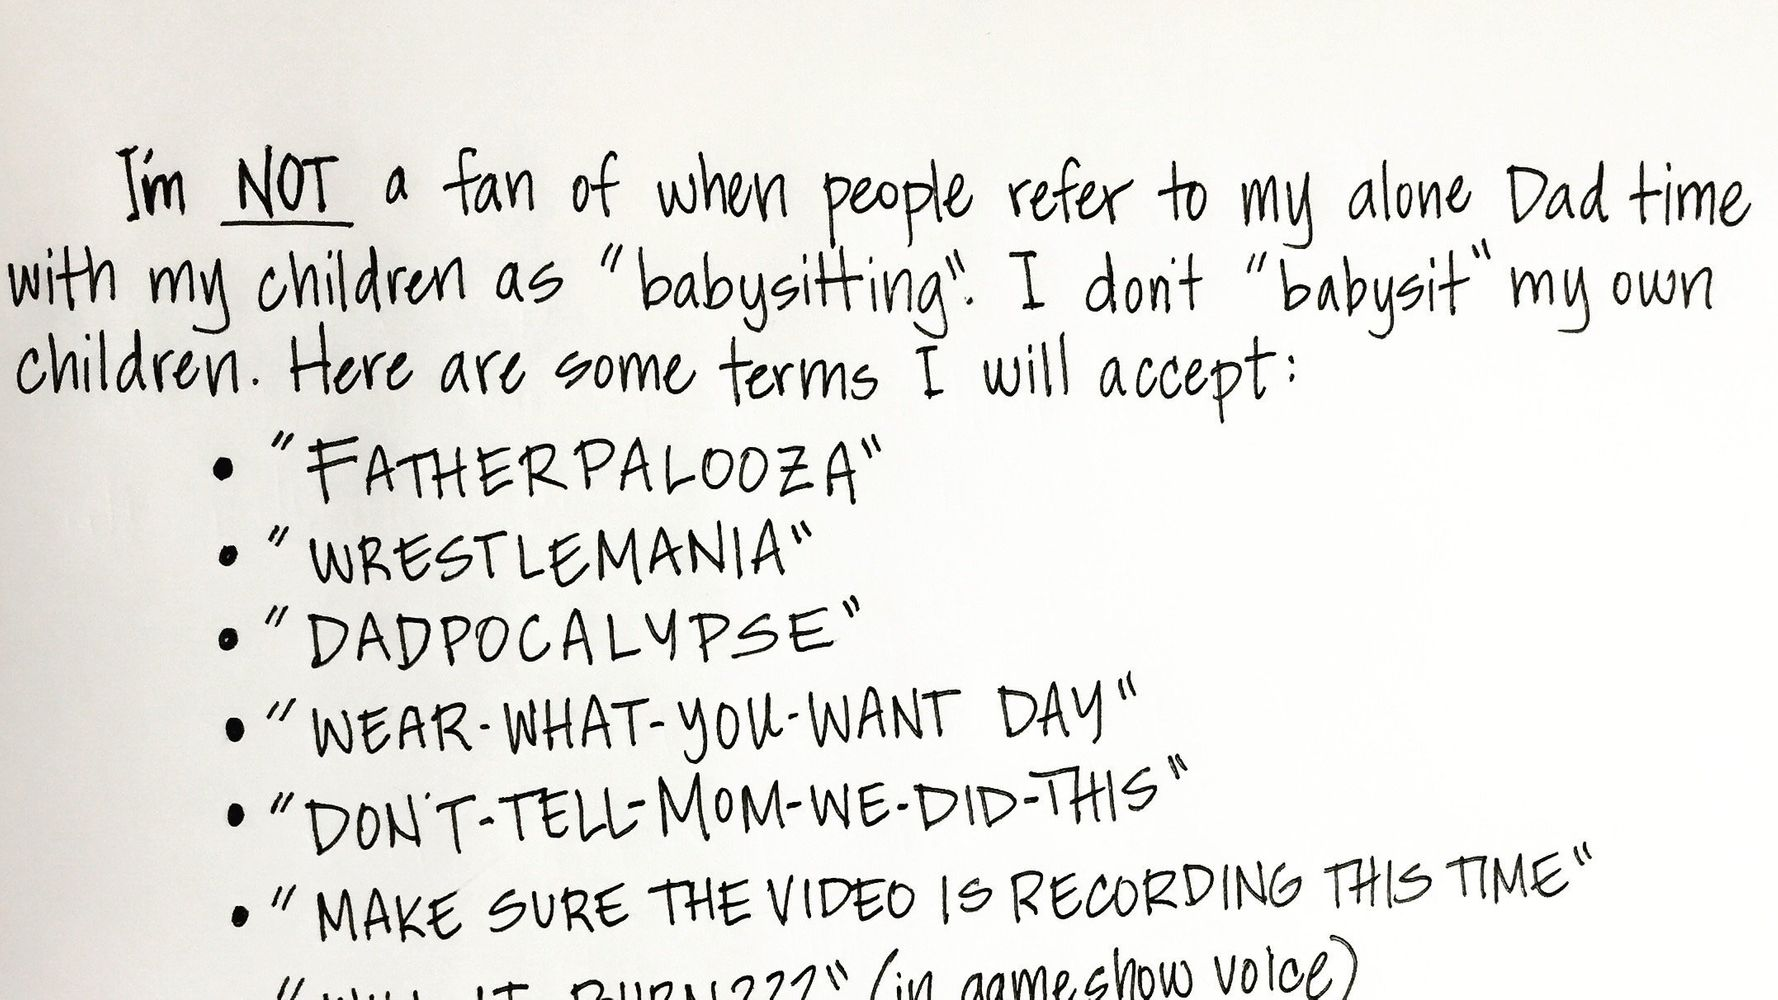 Dad's Hilarious Note Shows Why He's Not 'Babysitting' His